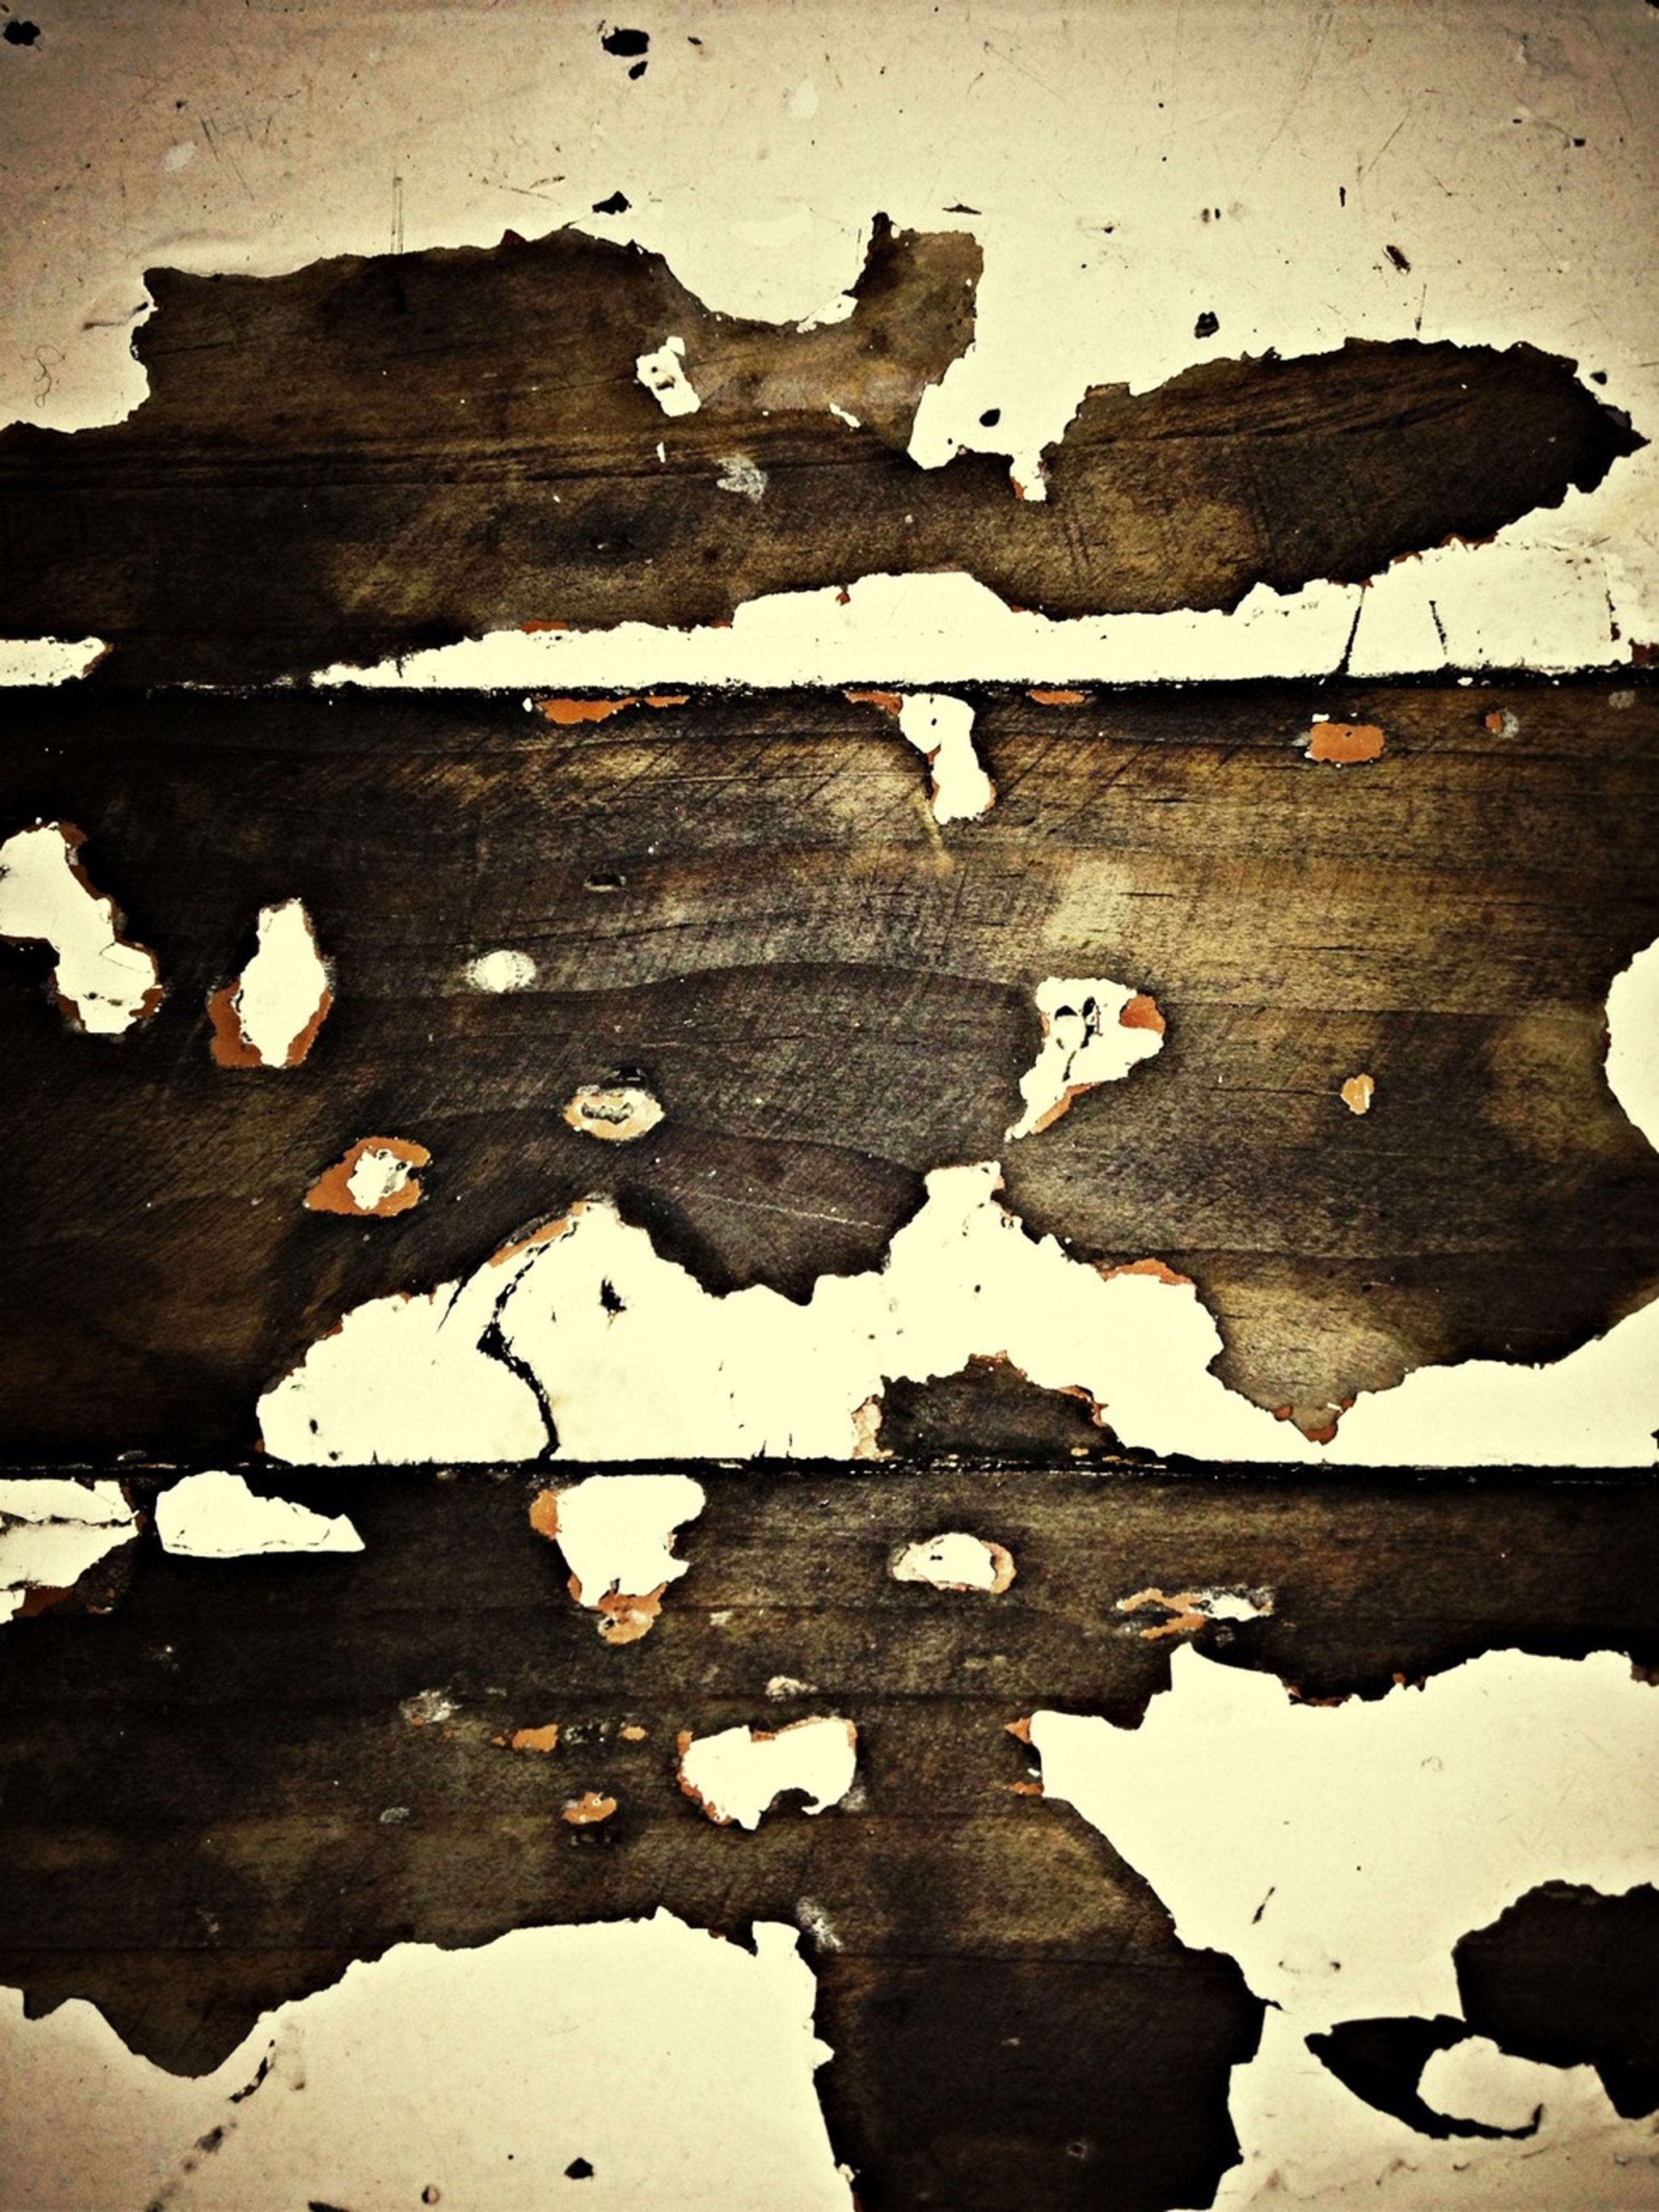 wood - material, high angle view, leaf, weathered, damaged, water, reflection, abandoned, outdoors, built structure, nature, deterioration, day, no people, puddle, old, close-up, wooden, wood, architecture